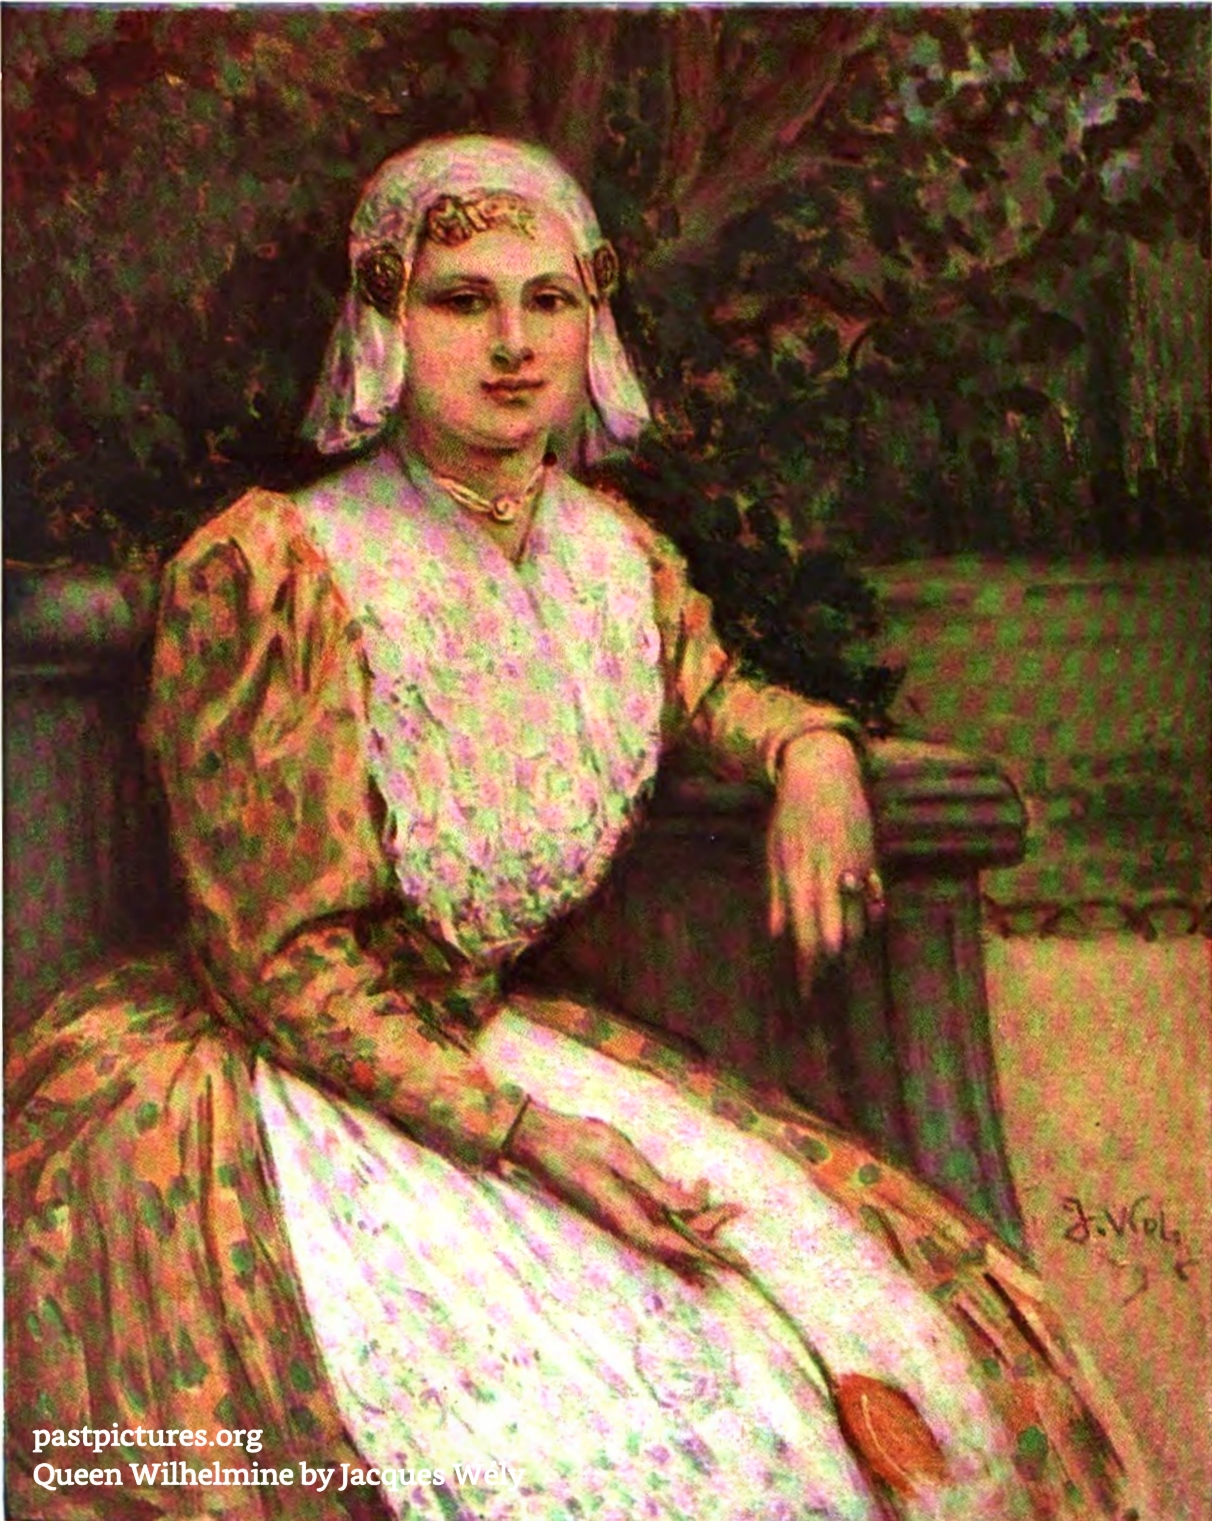 Queen Wilhelmina by Jacques Wély 1906